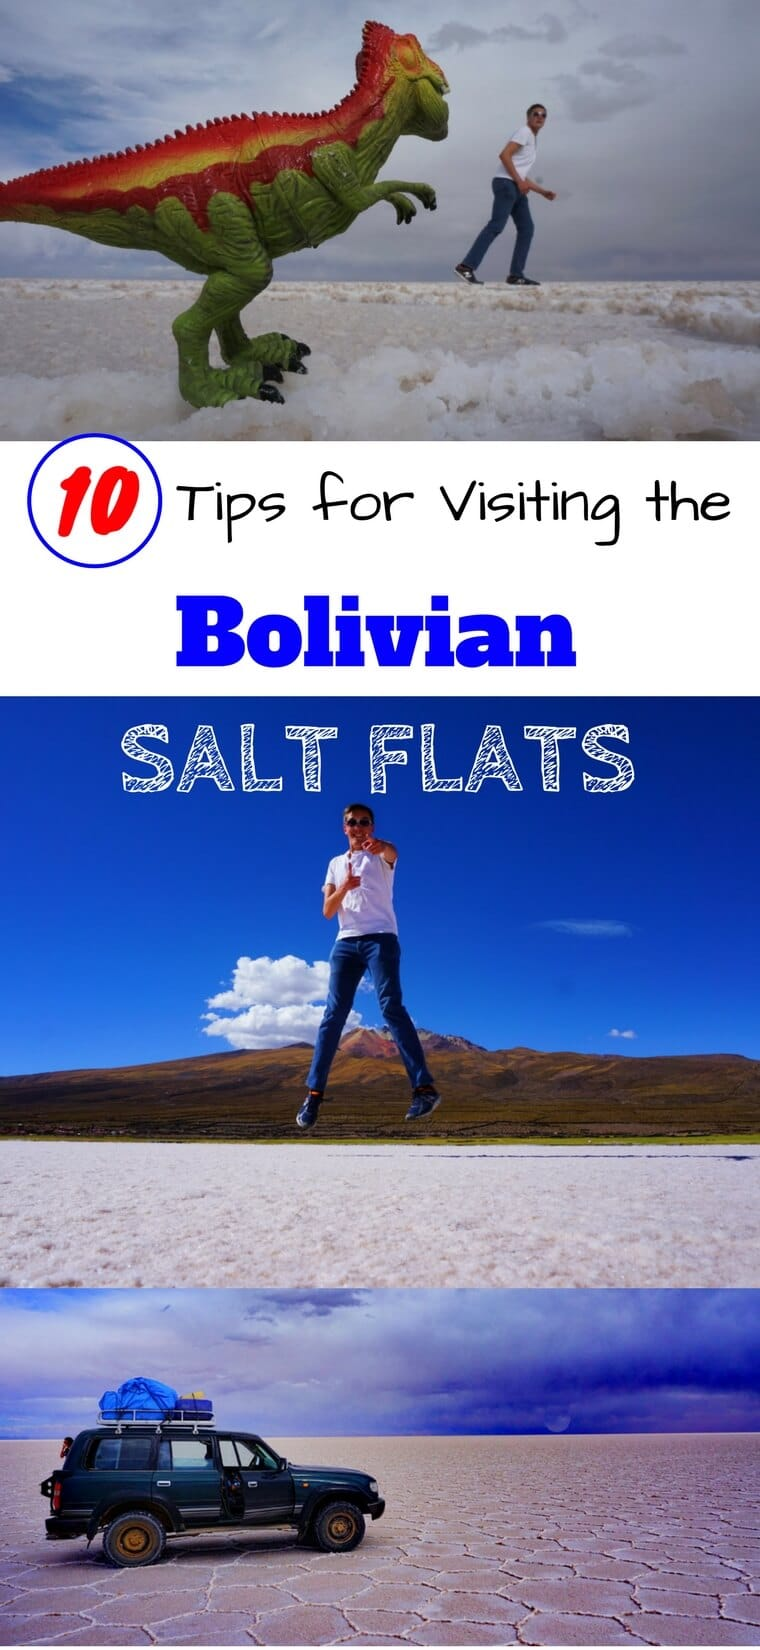 Bolivia's salt flats make for one of the world's most epic roadtrips. Make the most out of your trip through the Salar de Uyuni with these 10 simple but critical tips. #bolivia #travel #uyuni